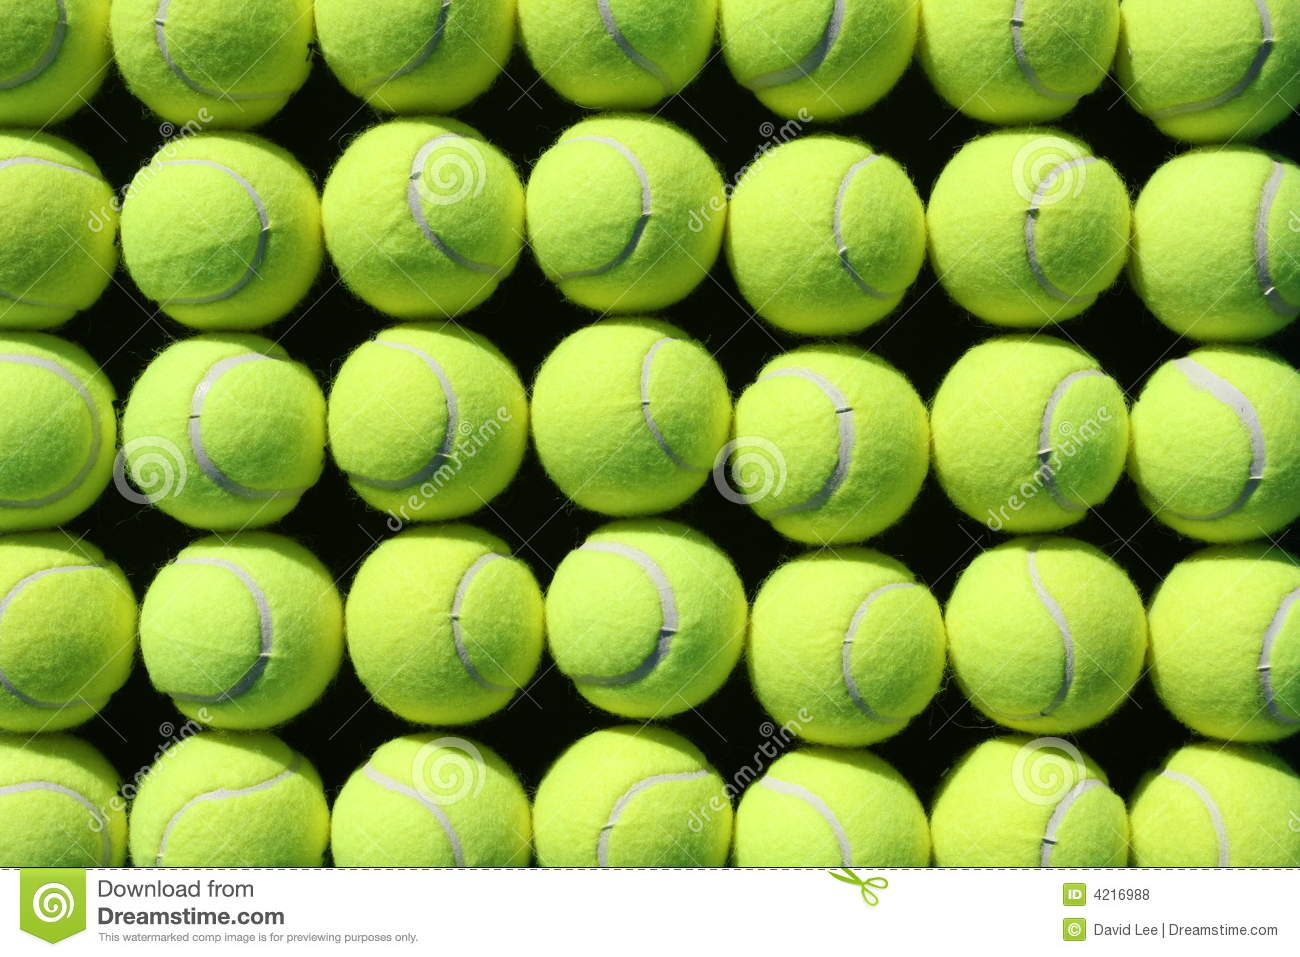 Rows of tennis balls for background or wallpaper.